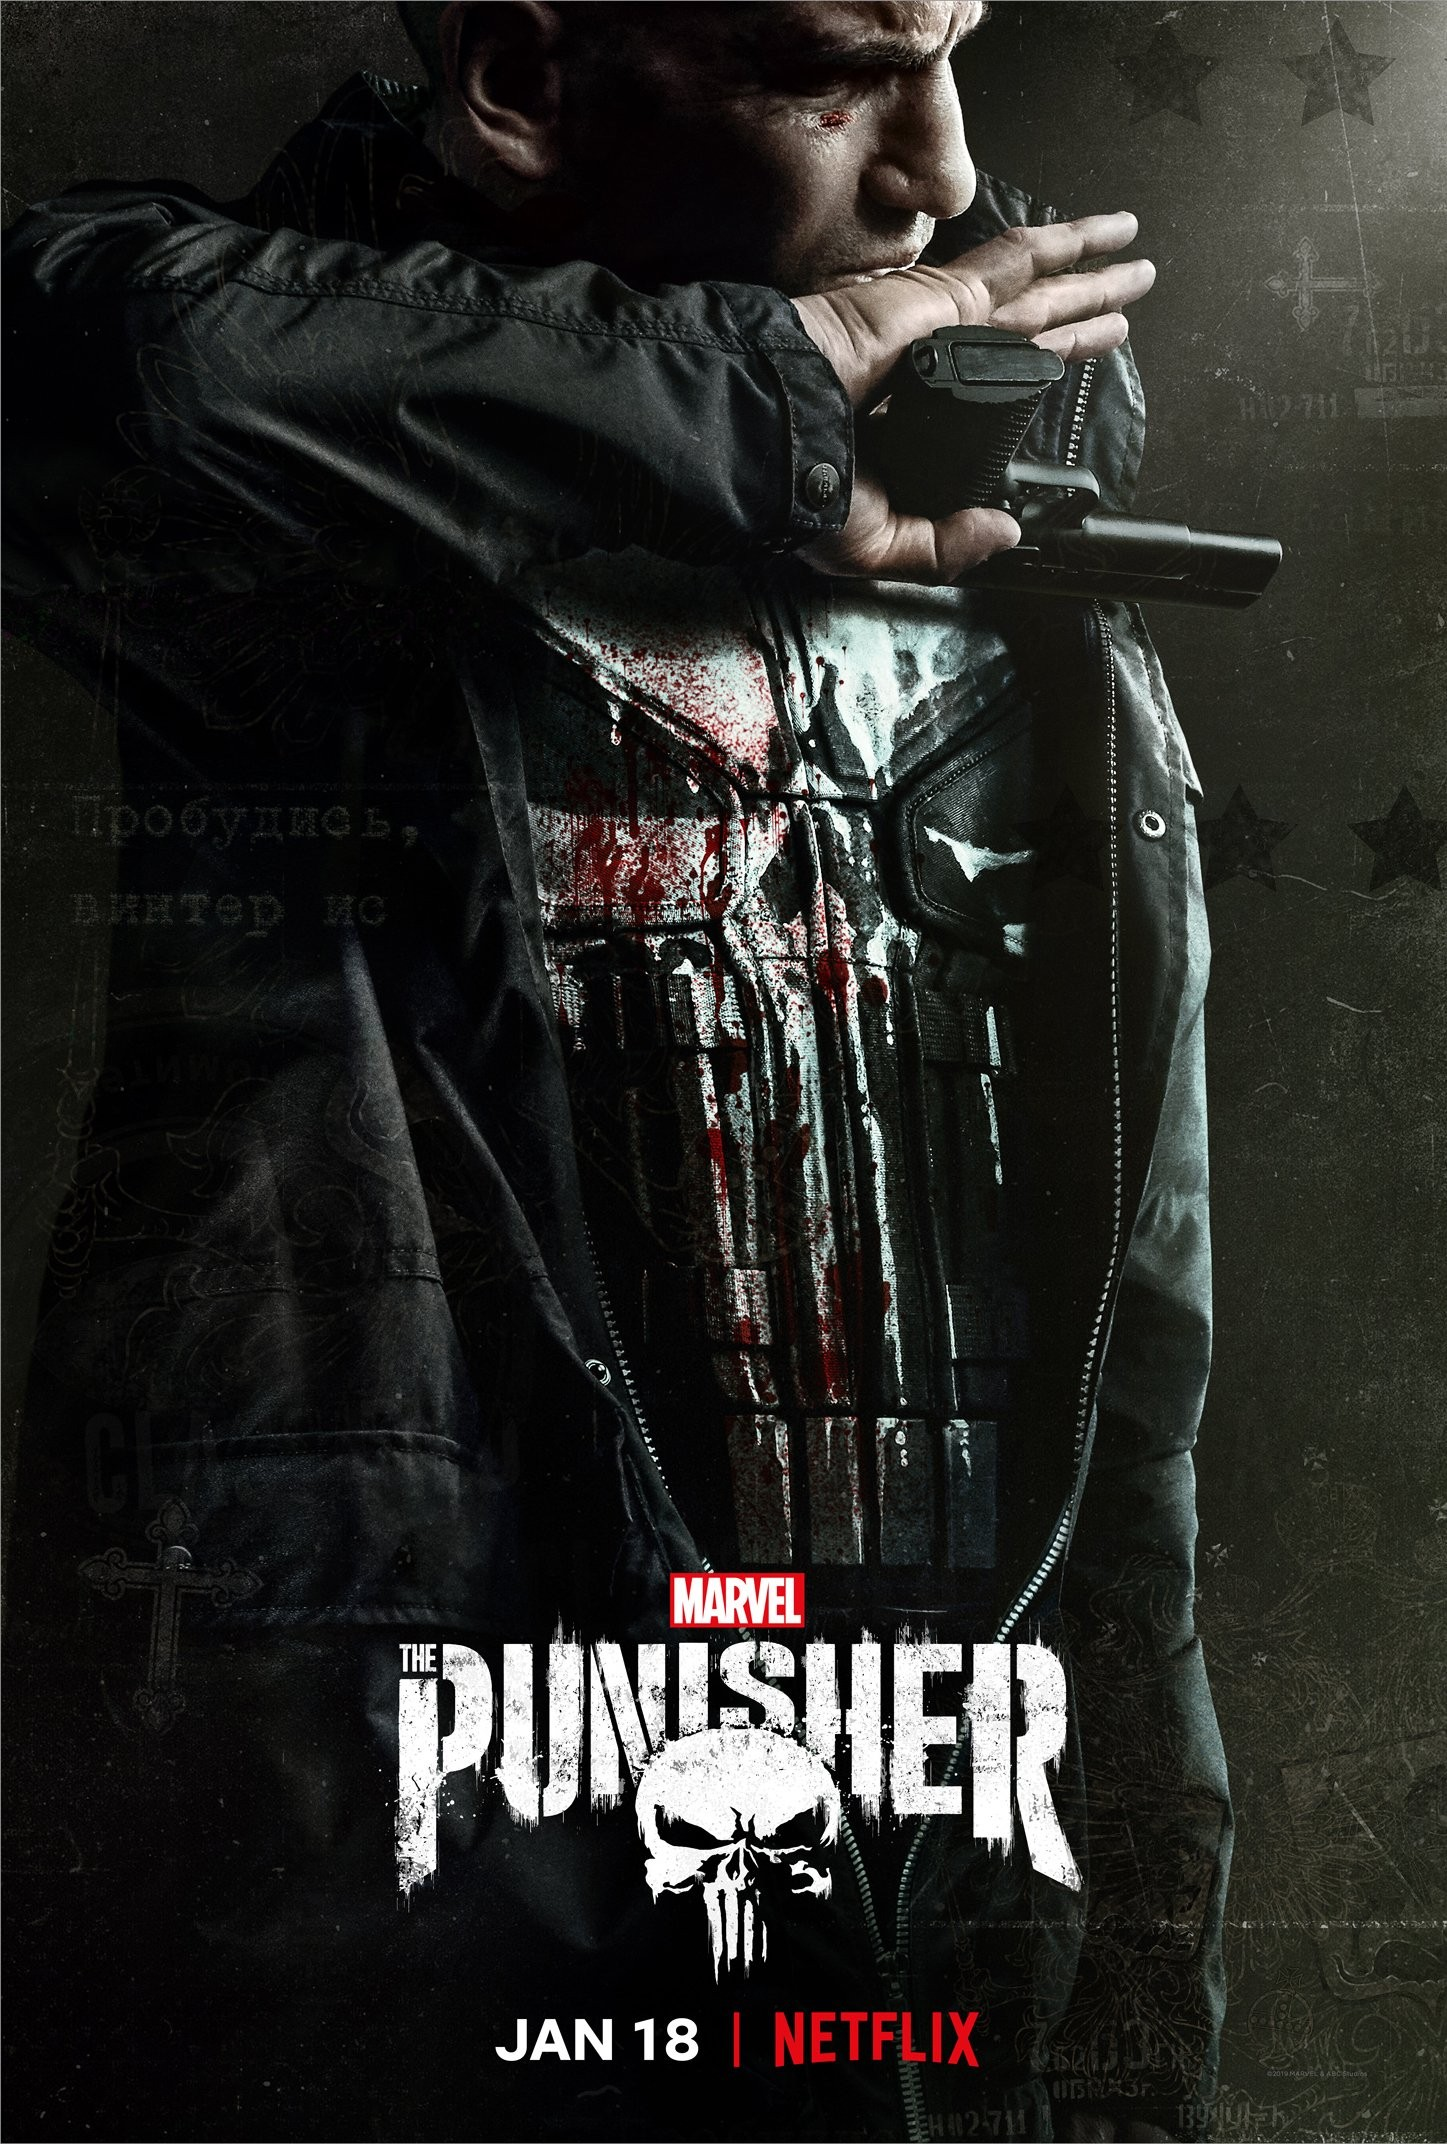 The Punisher Season 2 惩罚者 第二季